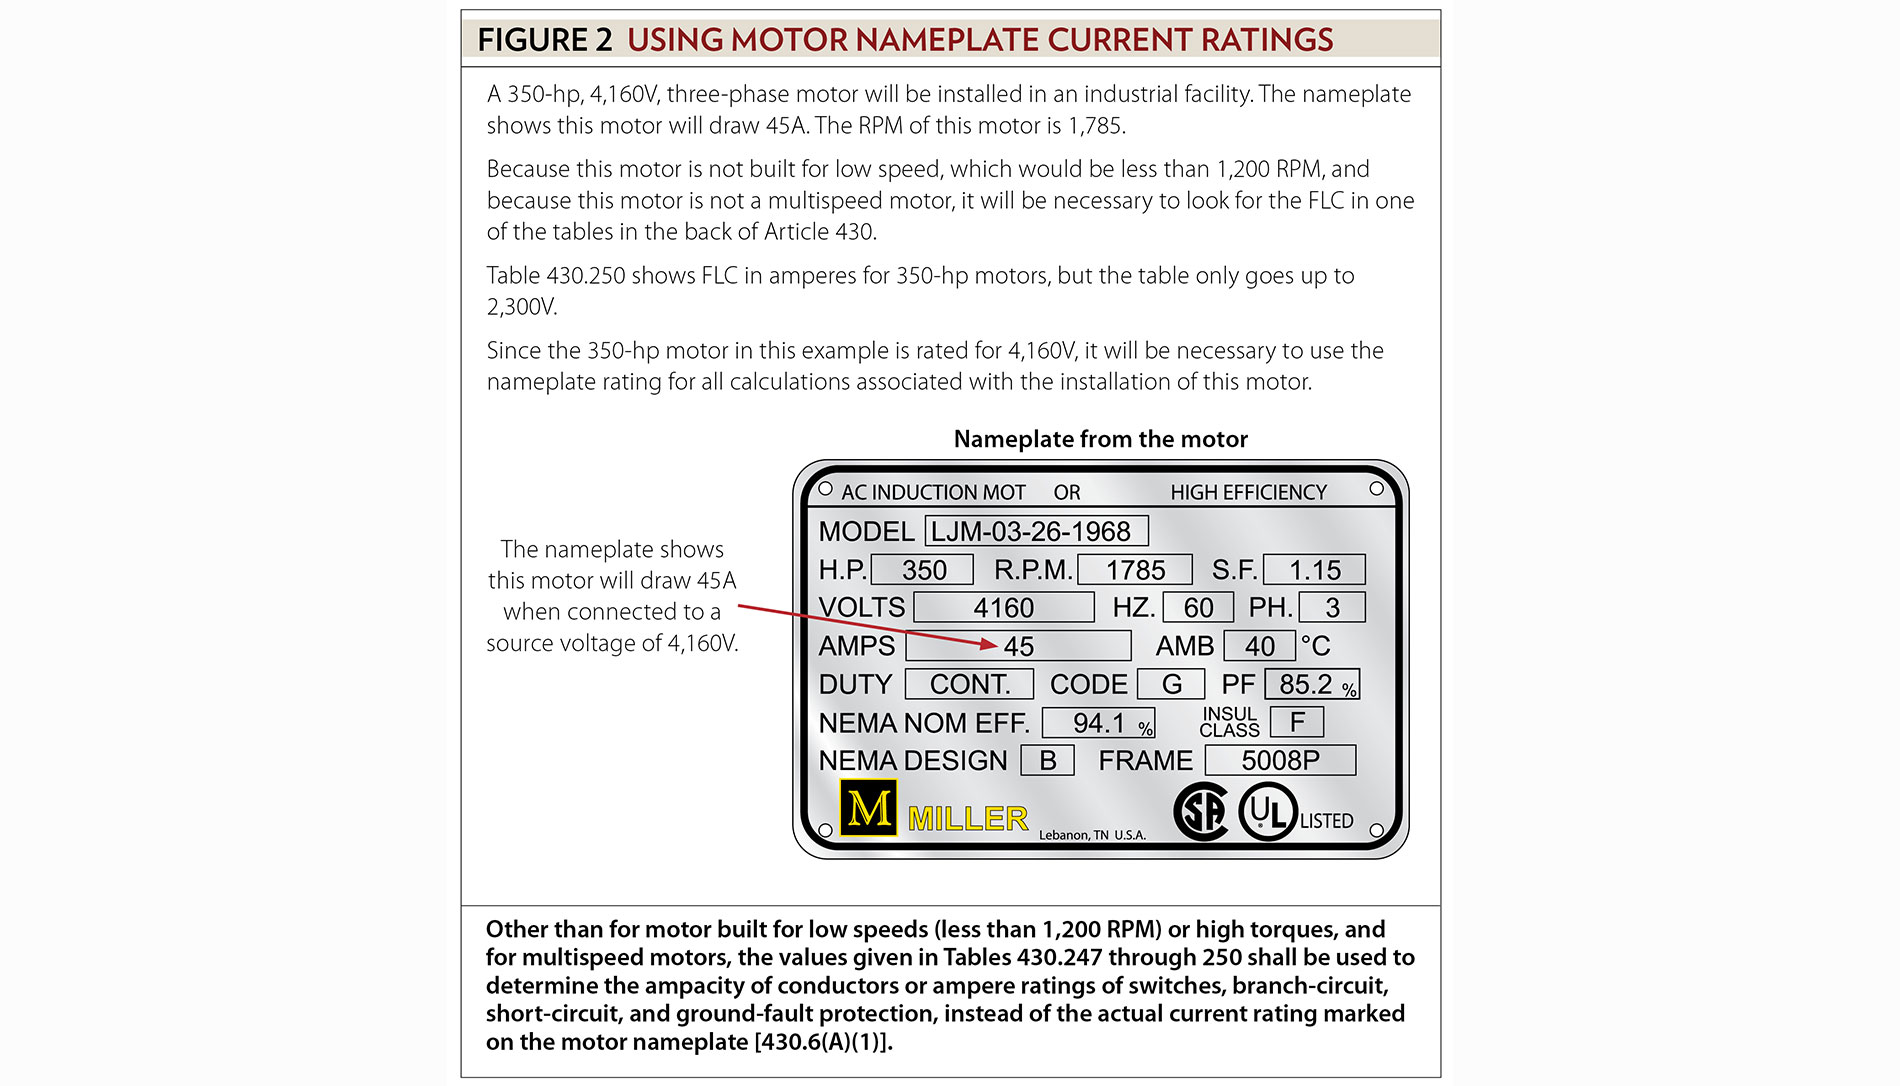 Motors motor circuits and controllers part iii article 430 except for motors built for low speeds motors with high torques multispeed motors and motors not listed in the tables it will be necessary to use the keyboard keysfo Images